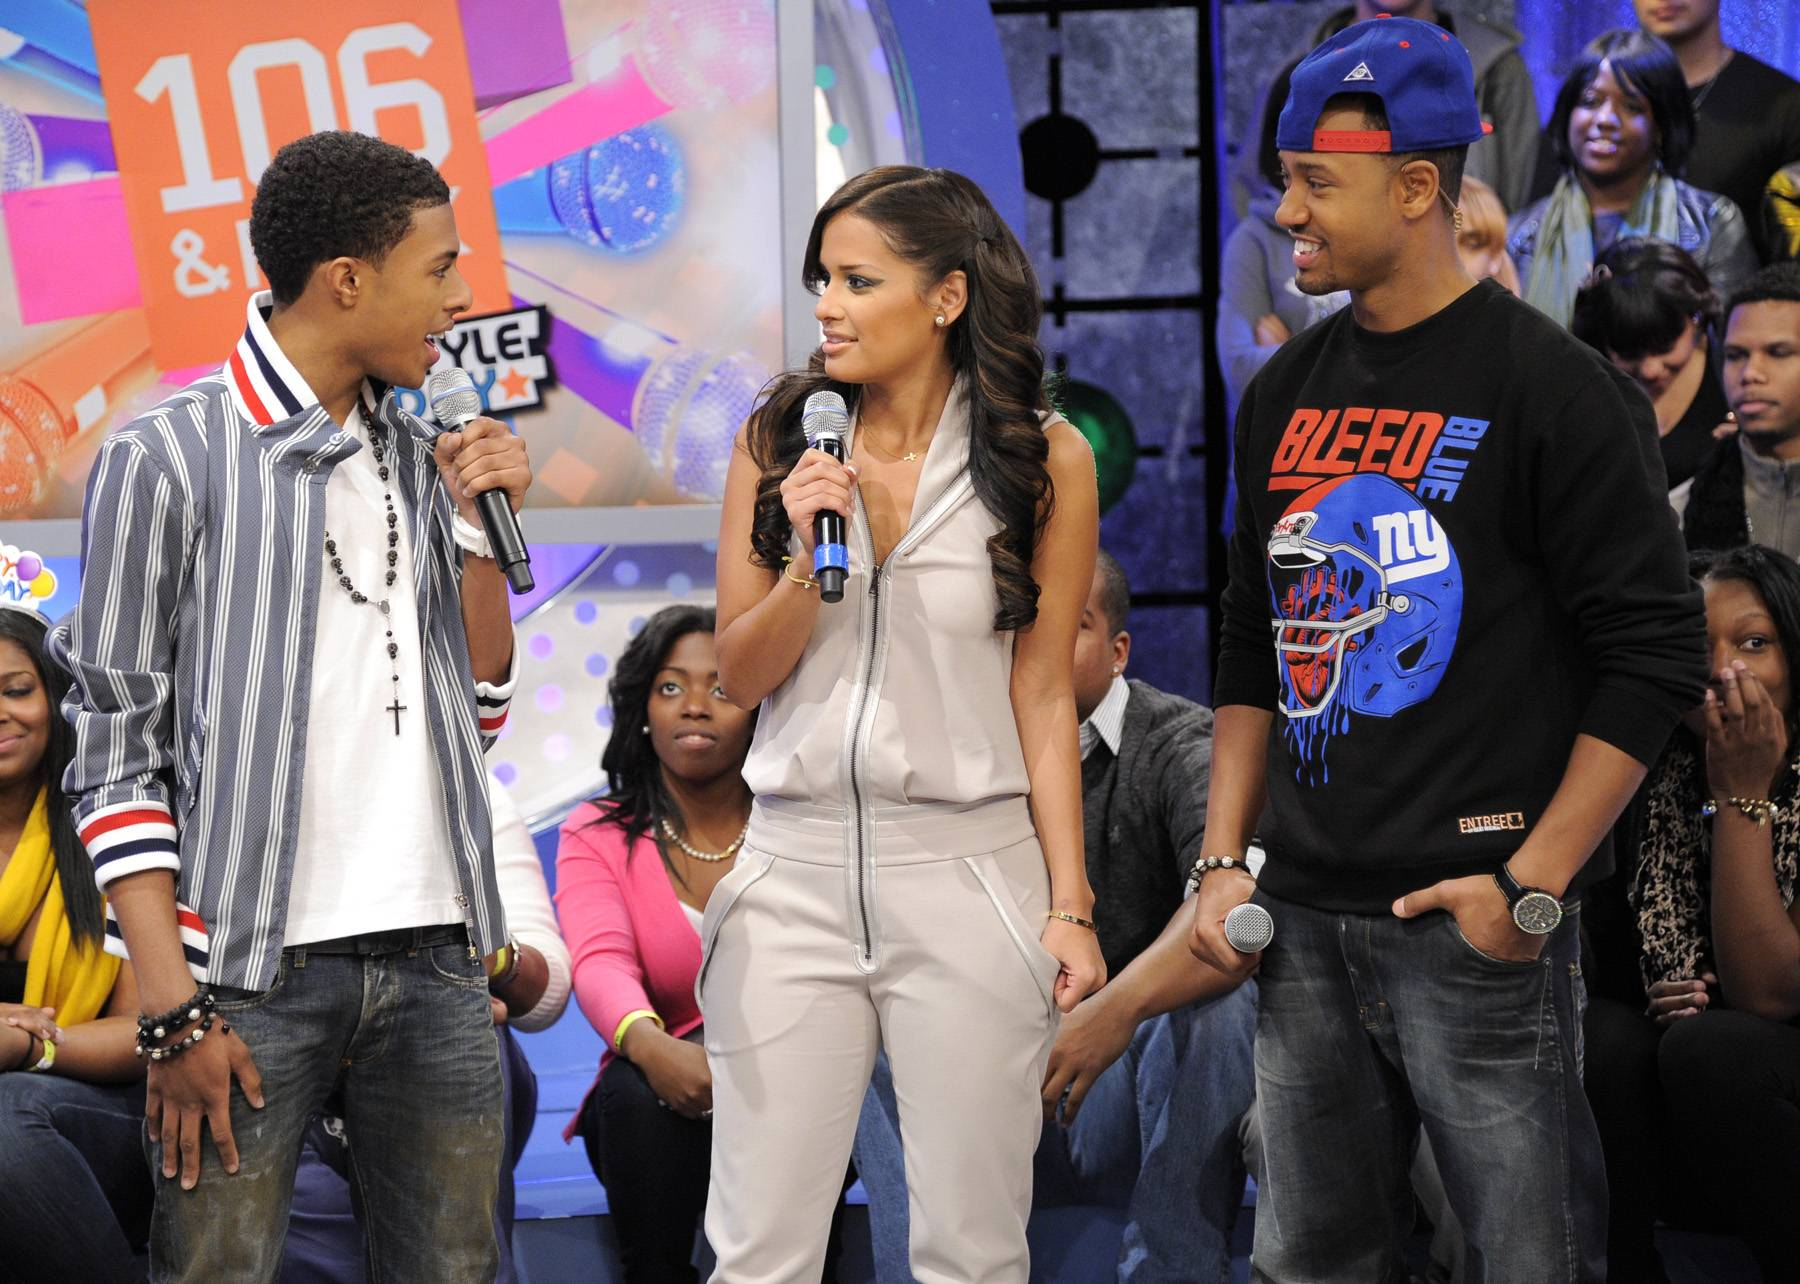 Always Good - Diggy Simmons prepares to reveal the title of his new album to Rocsi Diaz and Terrence J at 106 & Park, January 20, 2012. (Photo: John Ricard / BET)